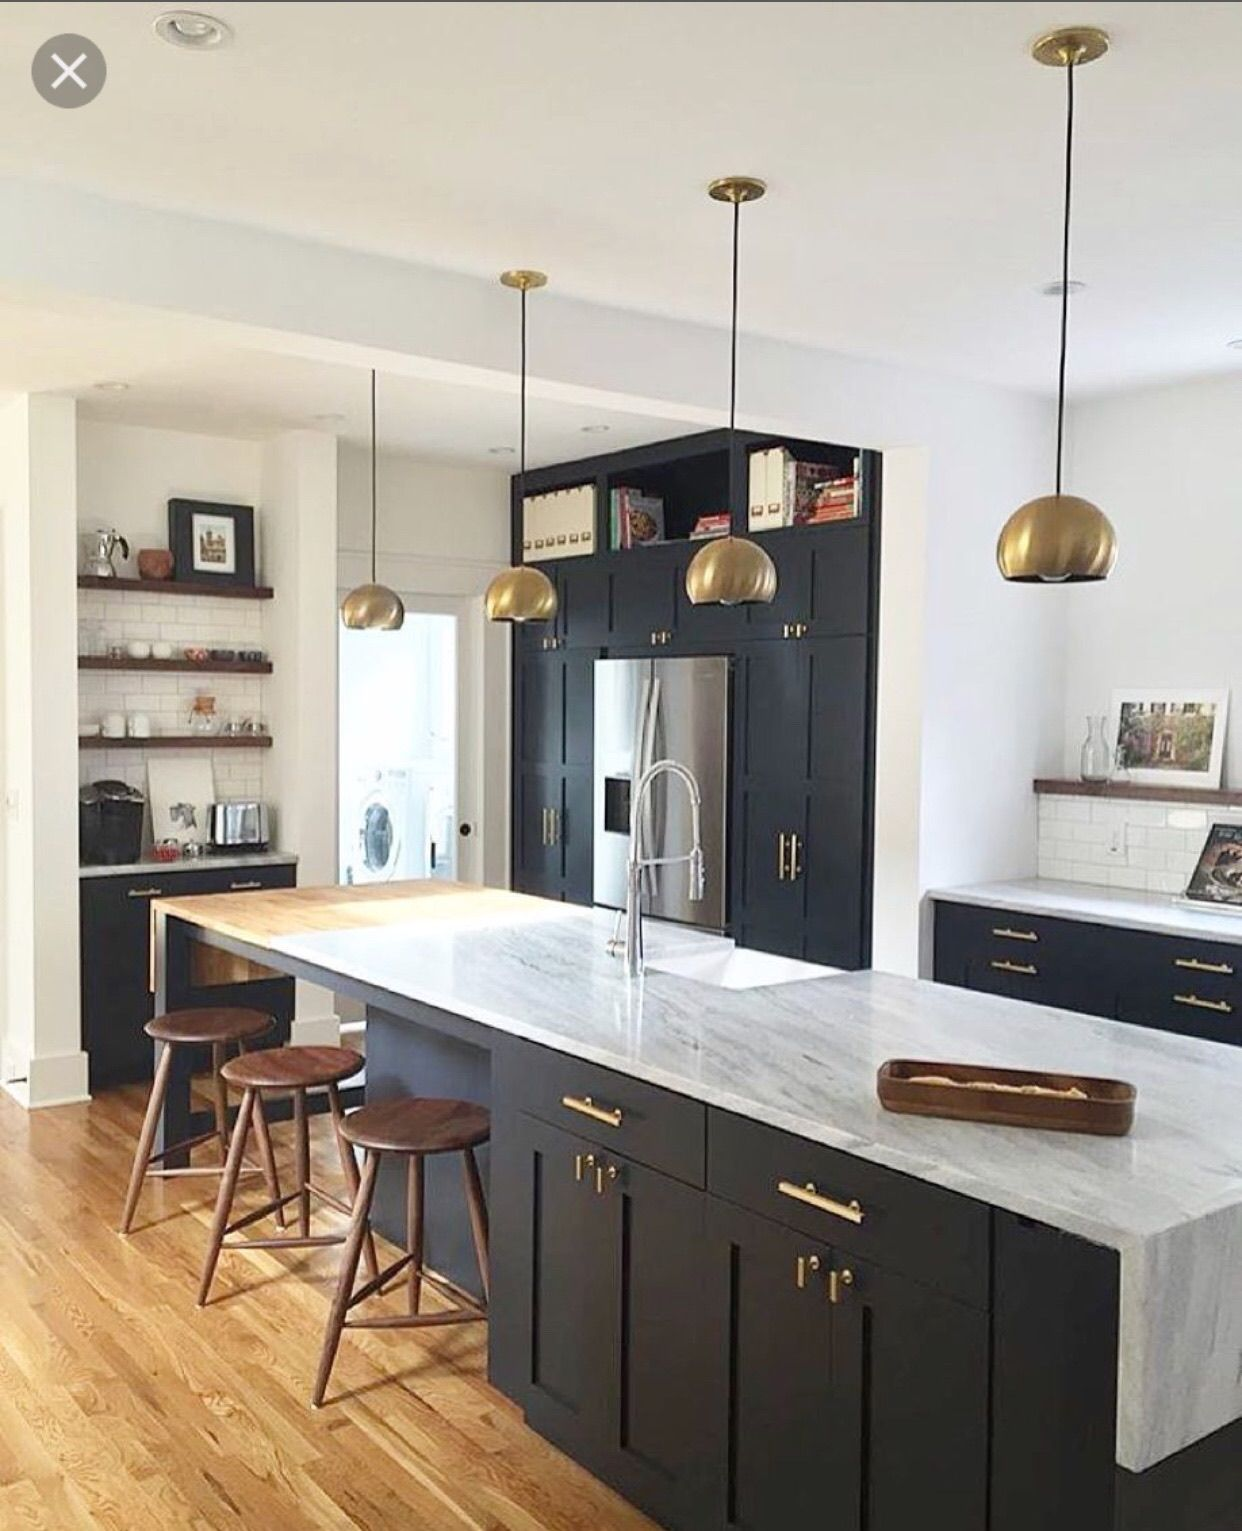 Setup Kitchen Wall Island Two Parallel Lines Marble Waterfall Dark Cabinets Light Wood Floor Modern Kitchen Kitchen Remodel Home Kitchens